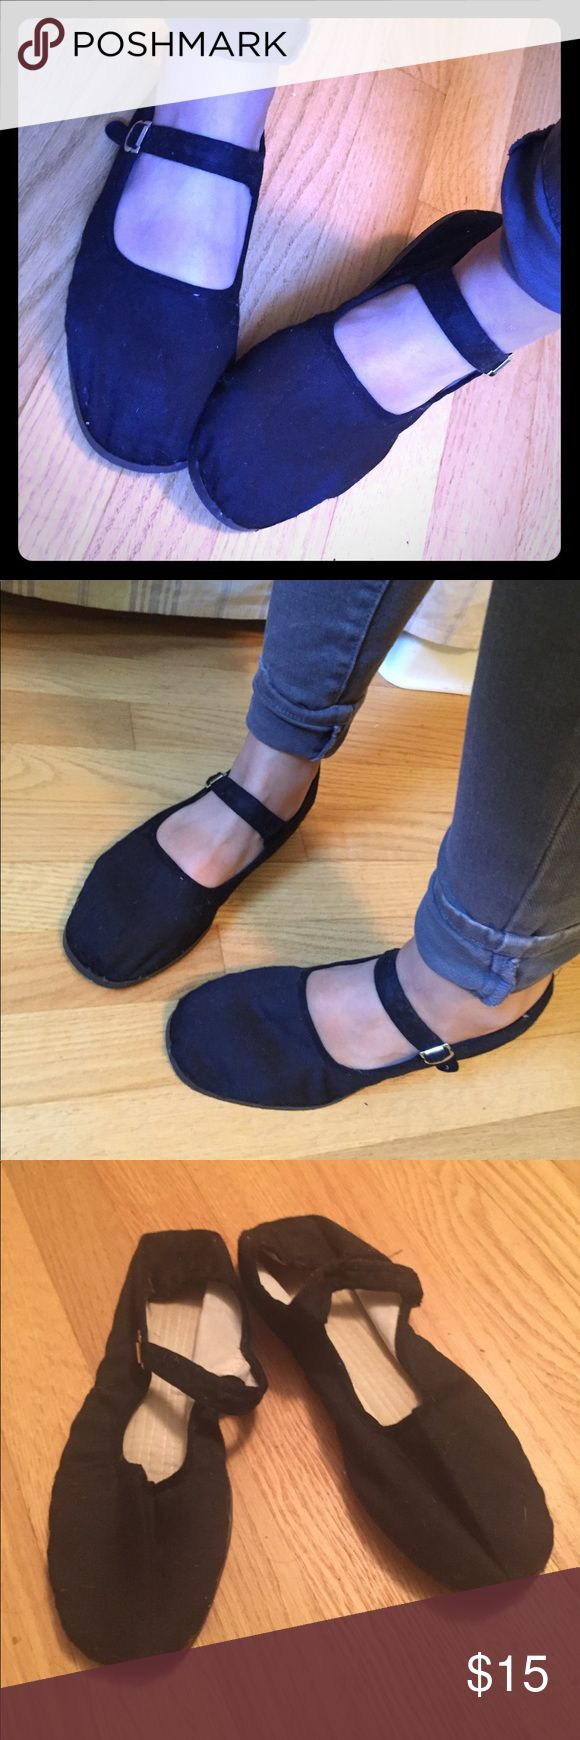 Cotton Mary Jane Slippers Black cotton Mary Jane slippers/flats. In like new condition. Super comfy for inside or out! Shoes Flats & Loafers